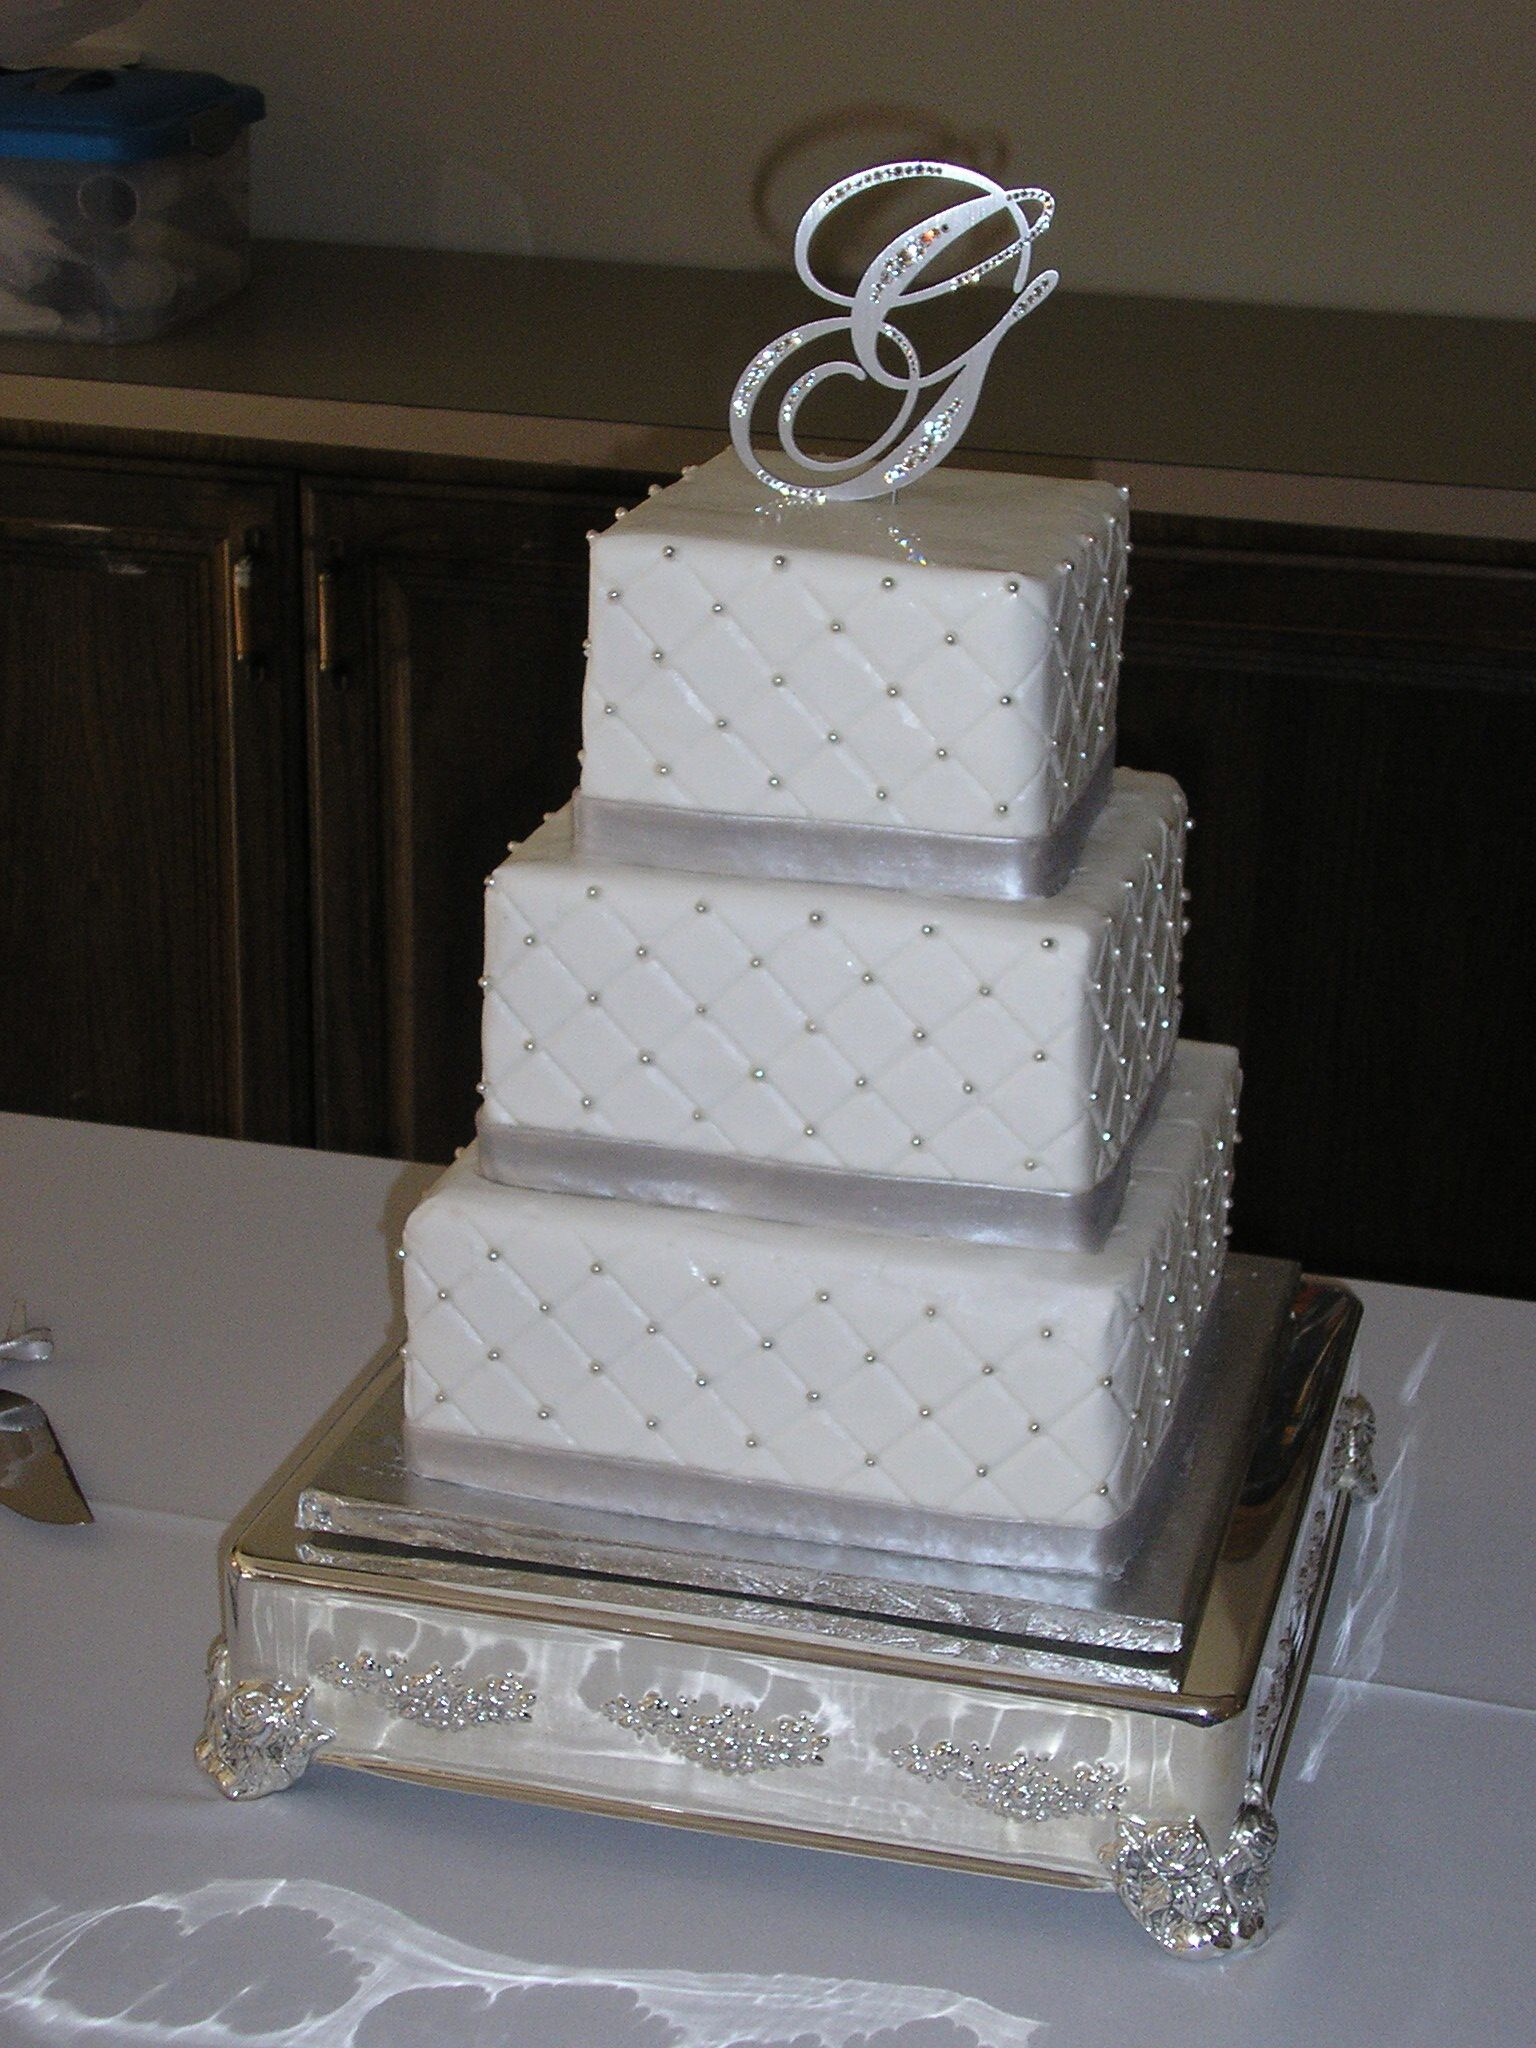 This tier square cake has a grid pattern with silver dragees on